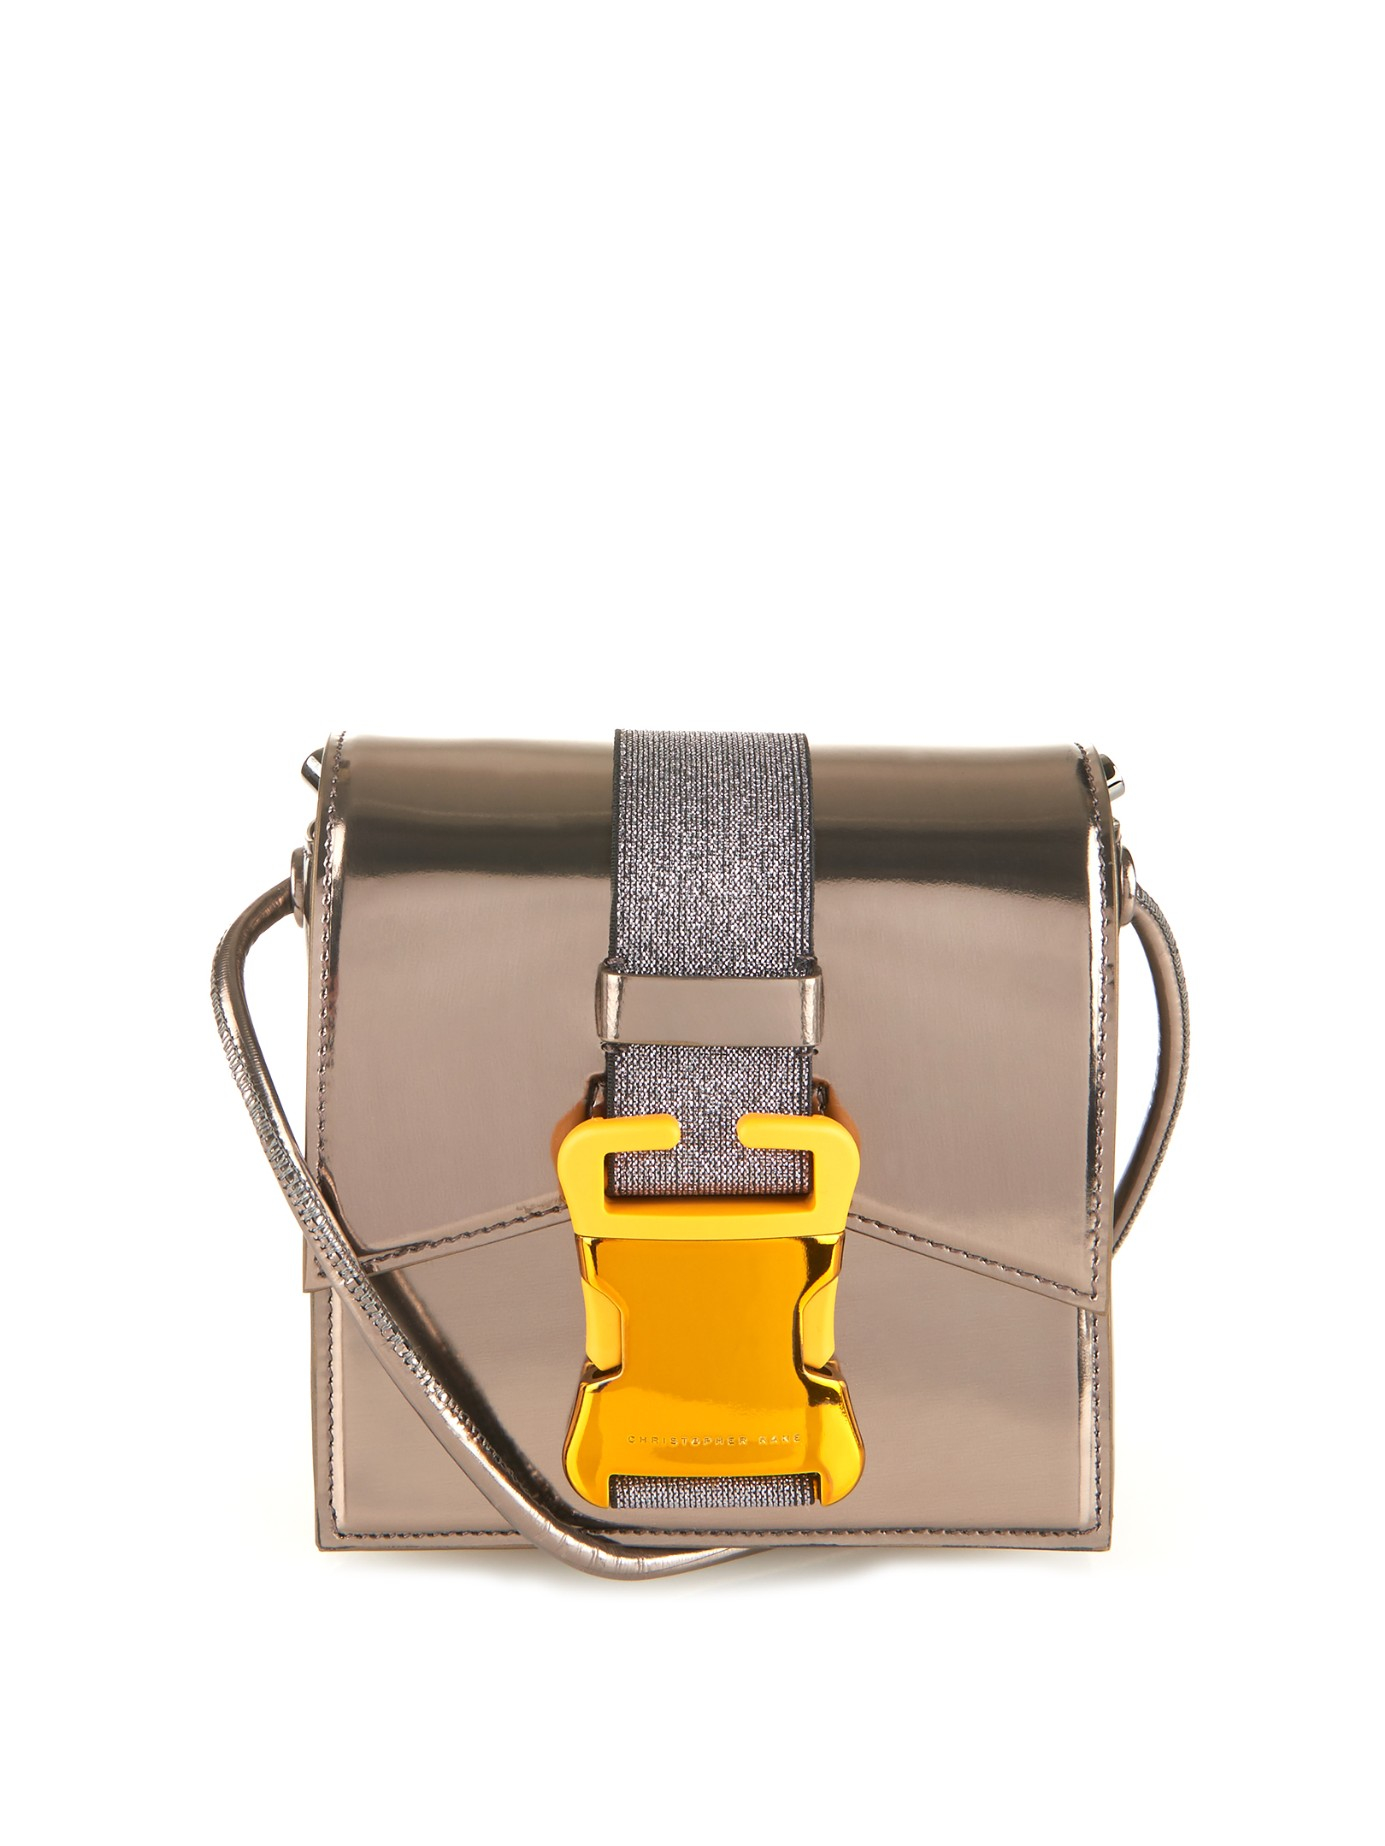 BAGS - Cross-body bags Christopher Kane YS73NOf